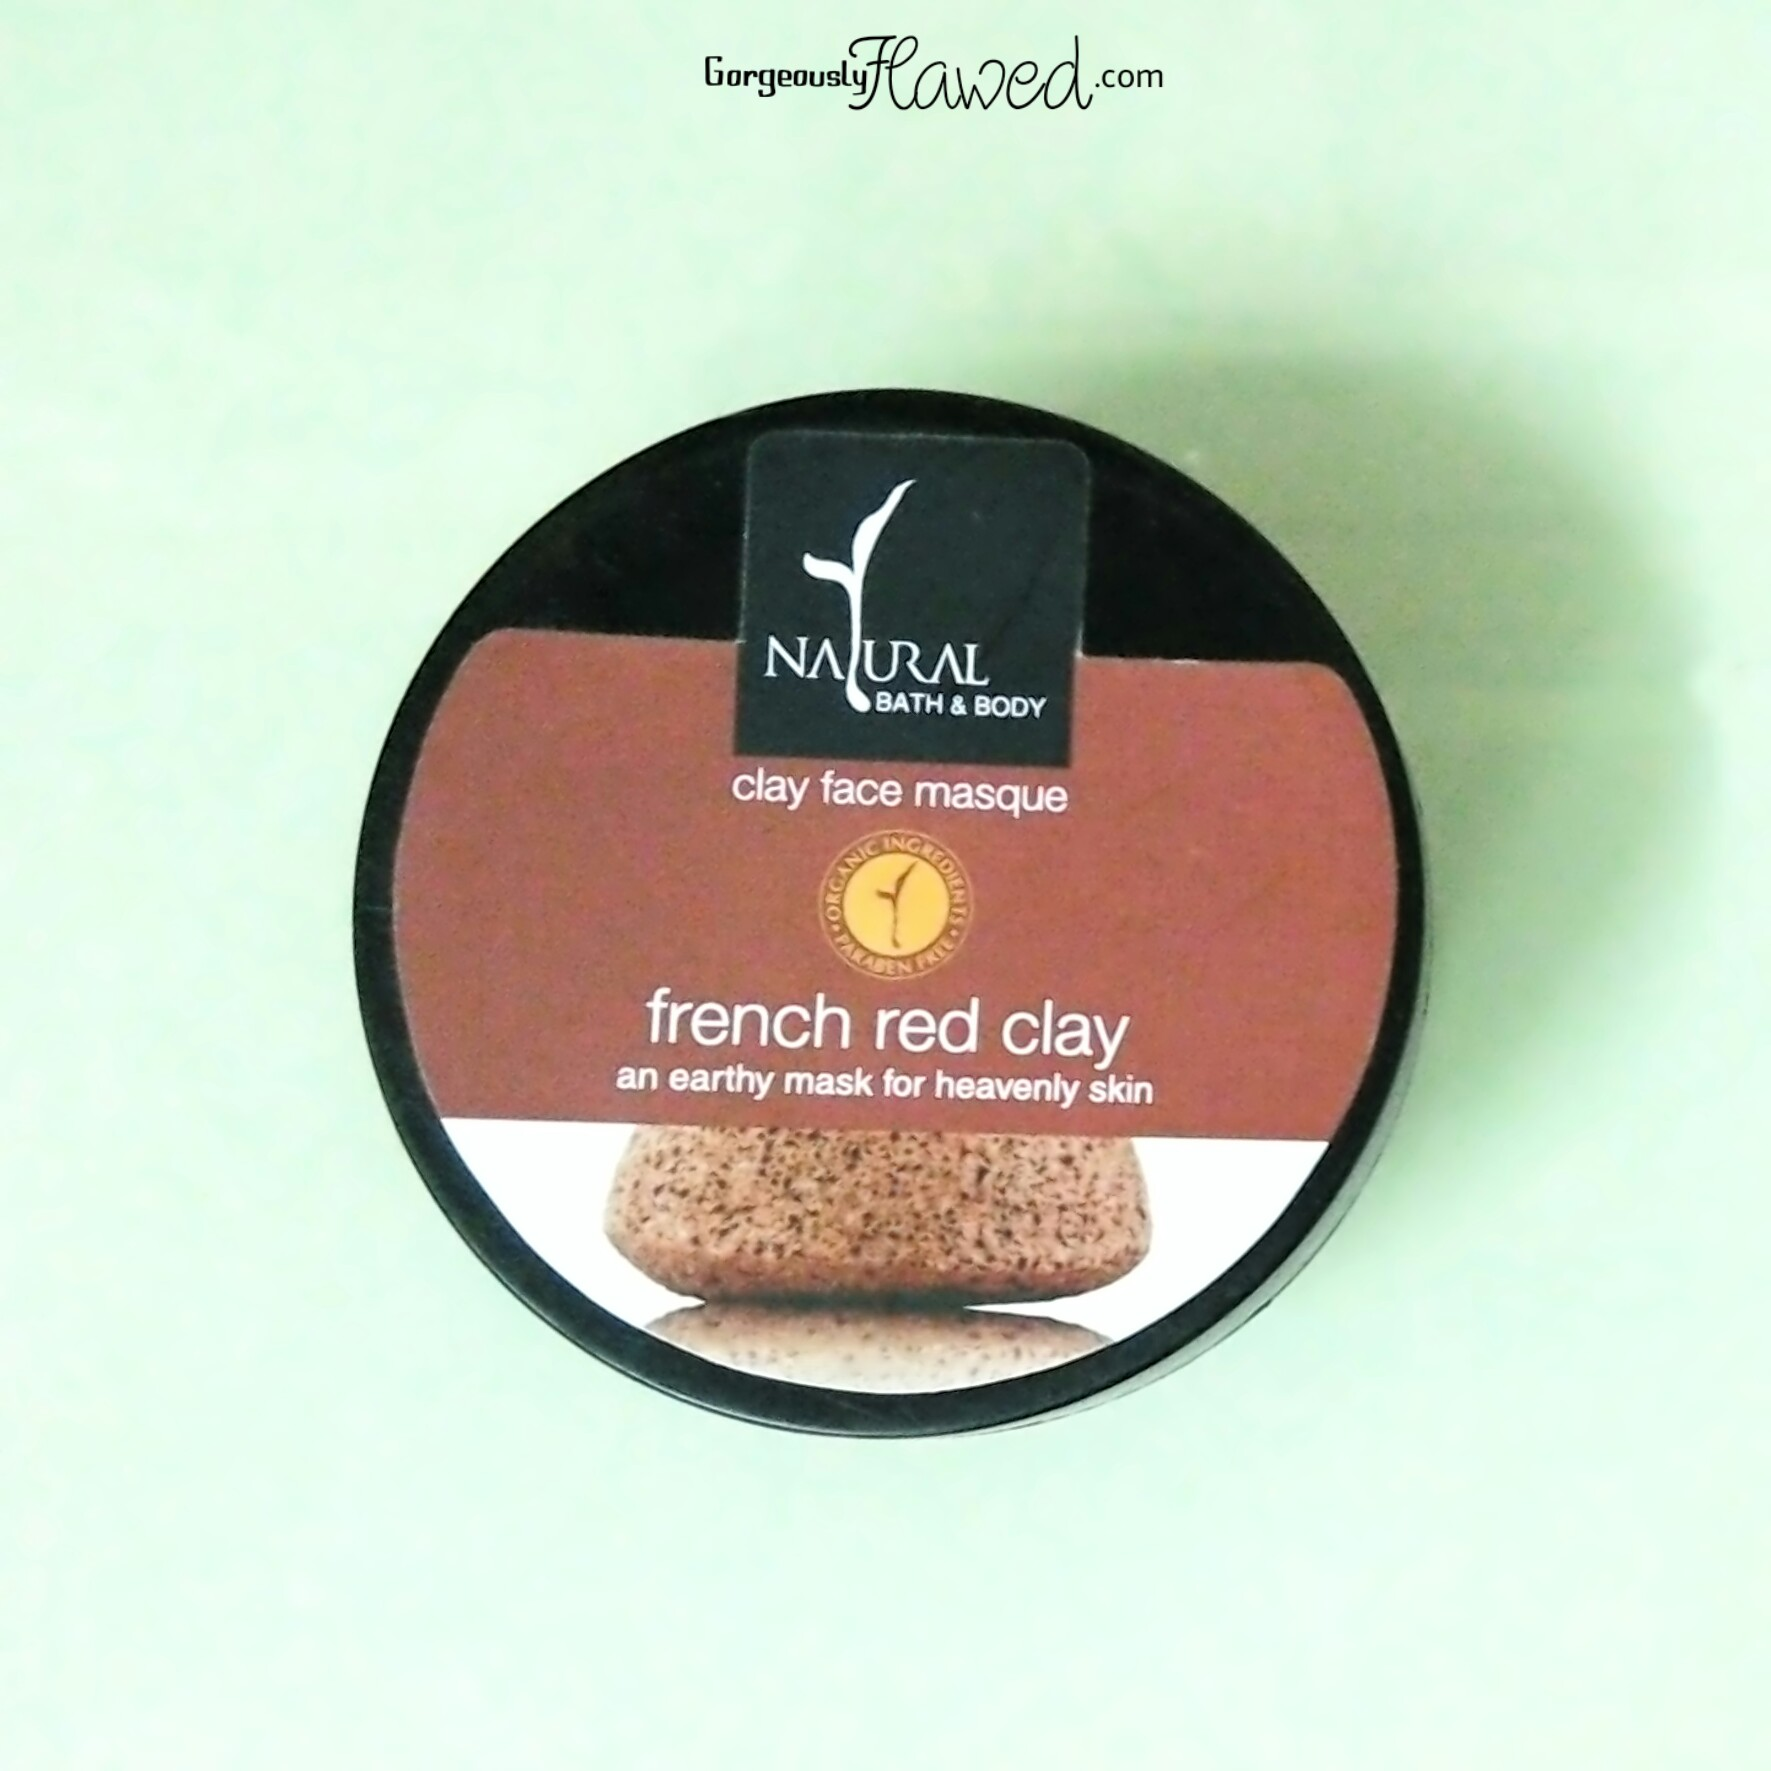 Best Face Packs For Oily, Acne Prone Skin | natural bath & body French red clay mask